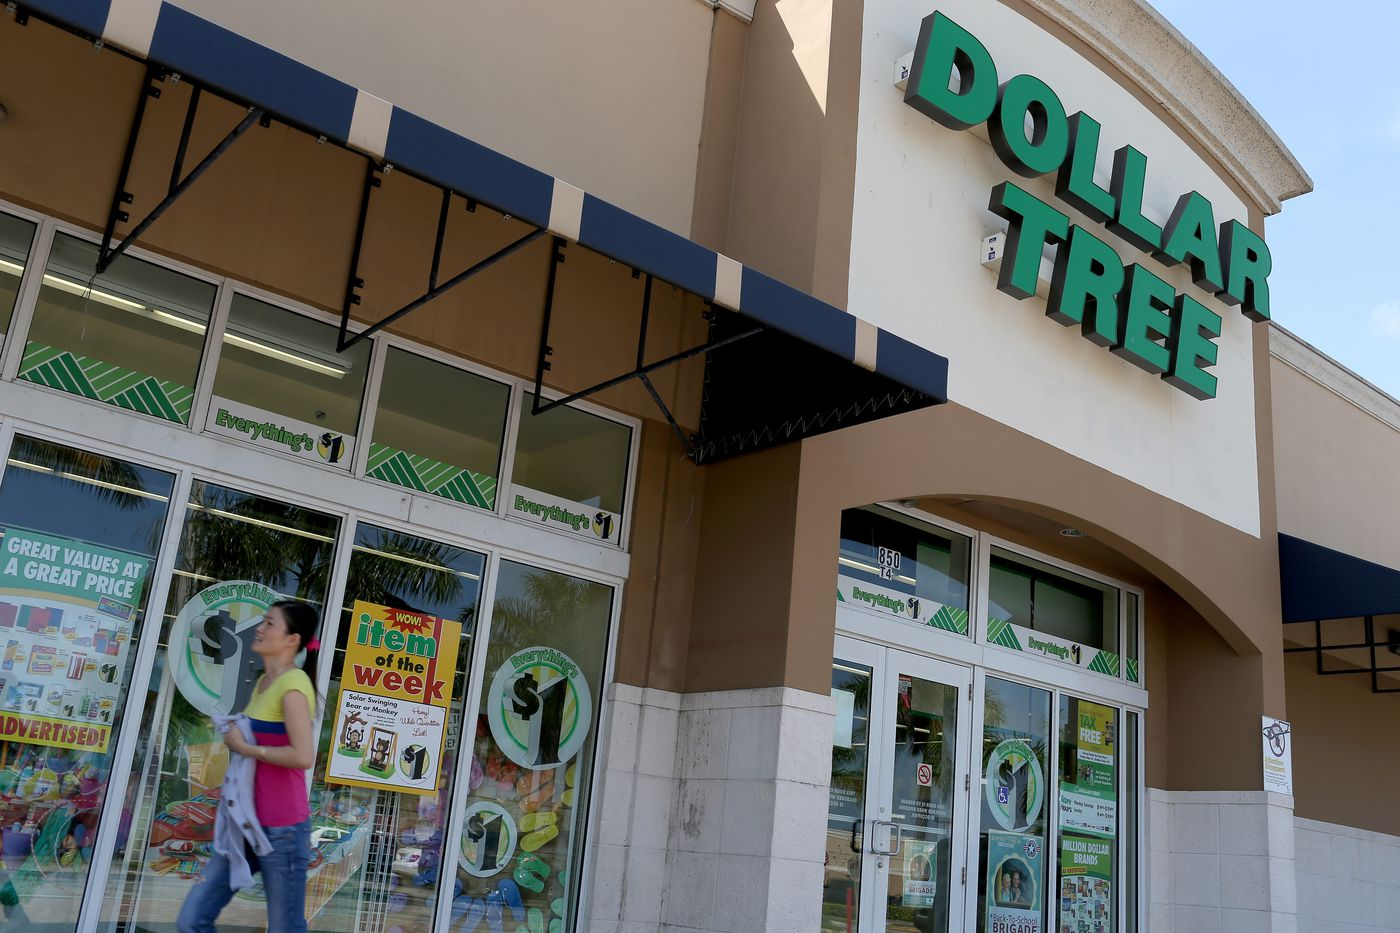 Dollar Tree is closing almost 400 Family Dollar stores this year - Vox